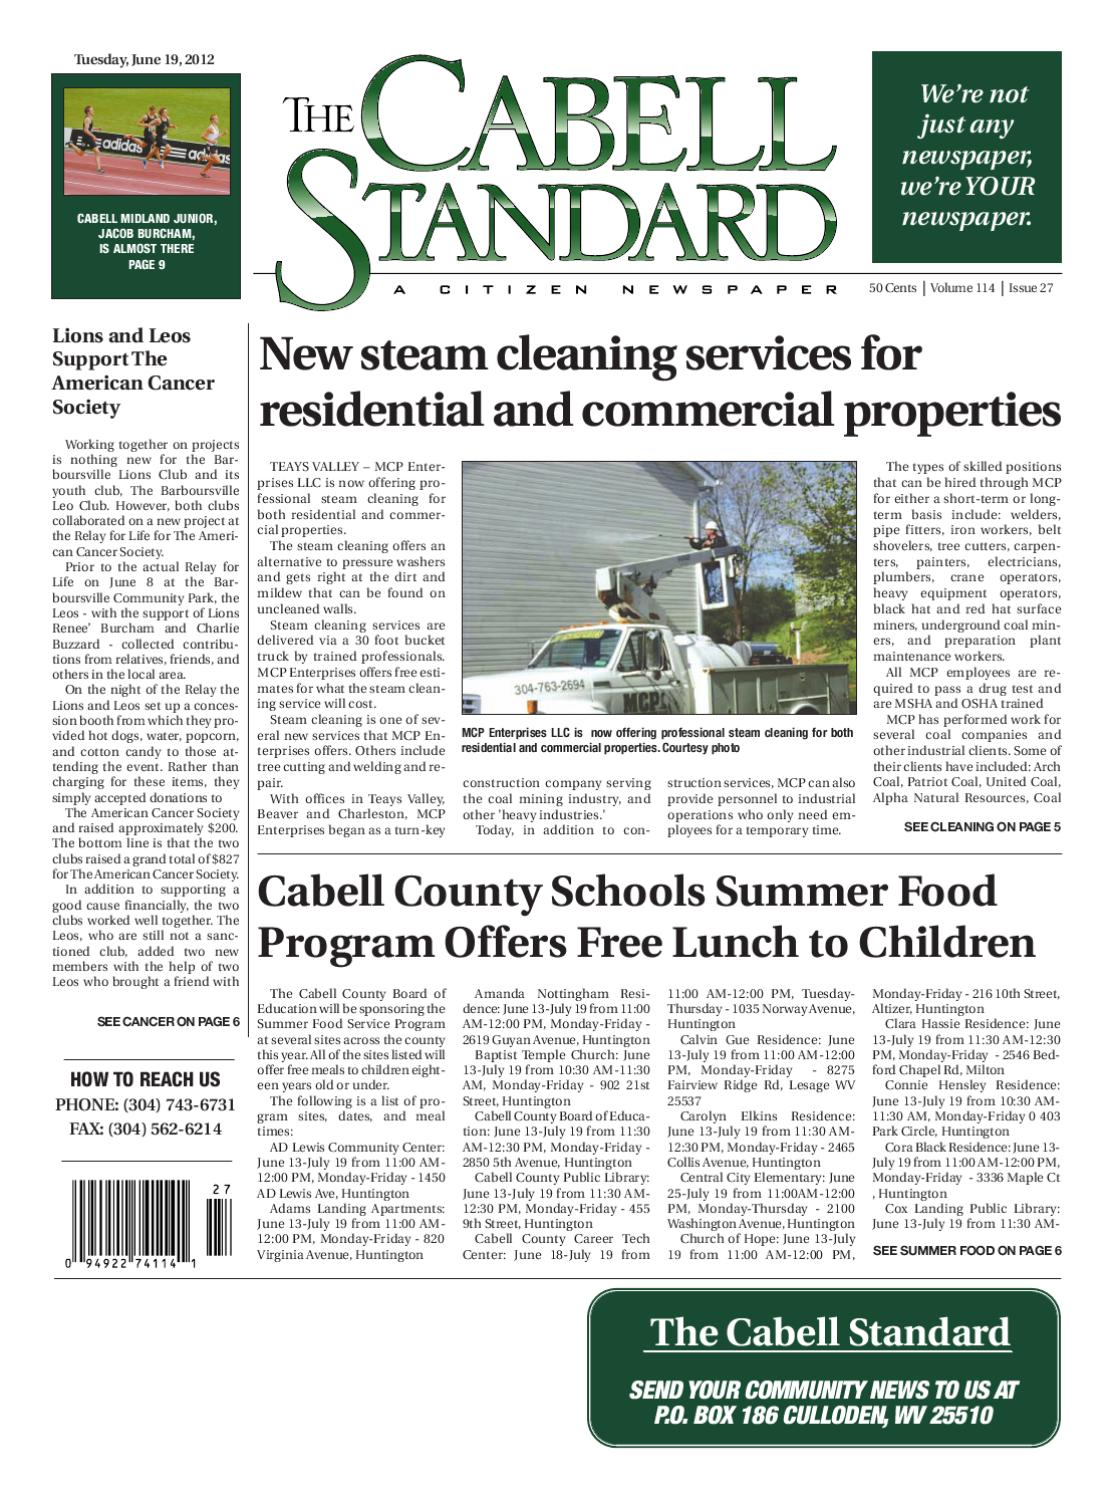 The Cabell Standard by PC Newspapers - issuu